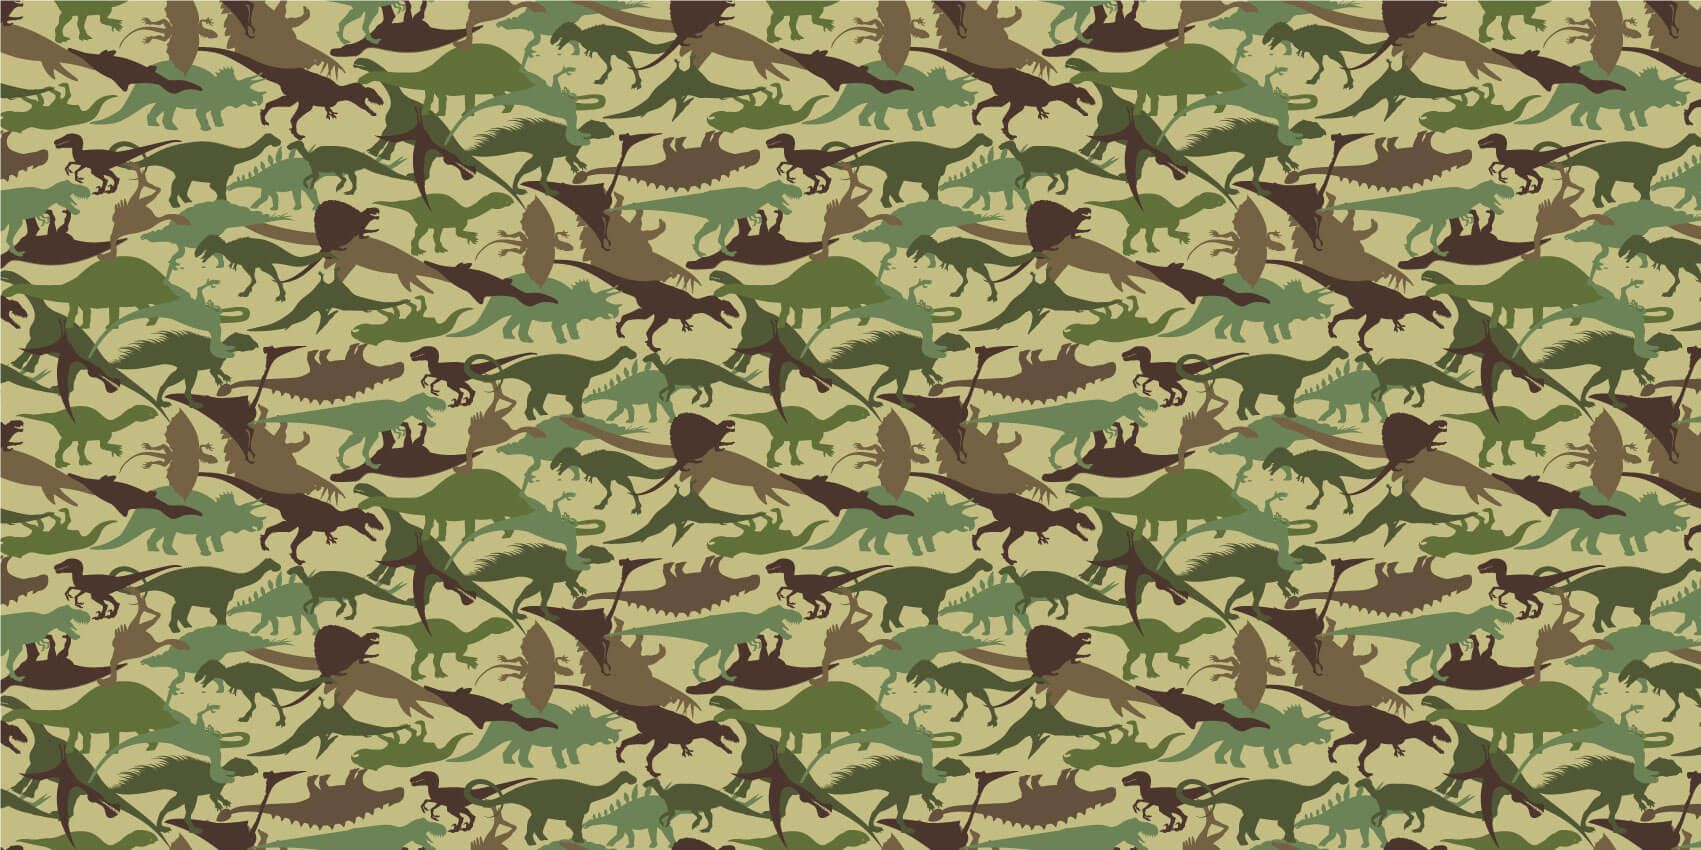 Dinosaures - Dino camouflage - Chambre d'enfants